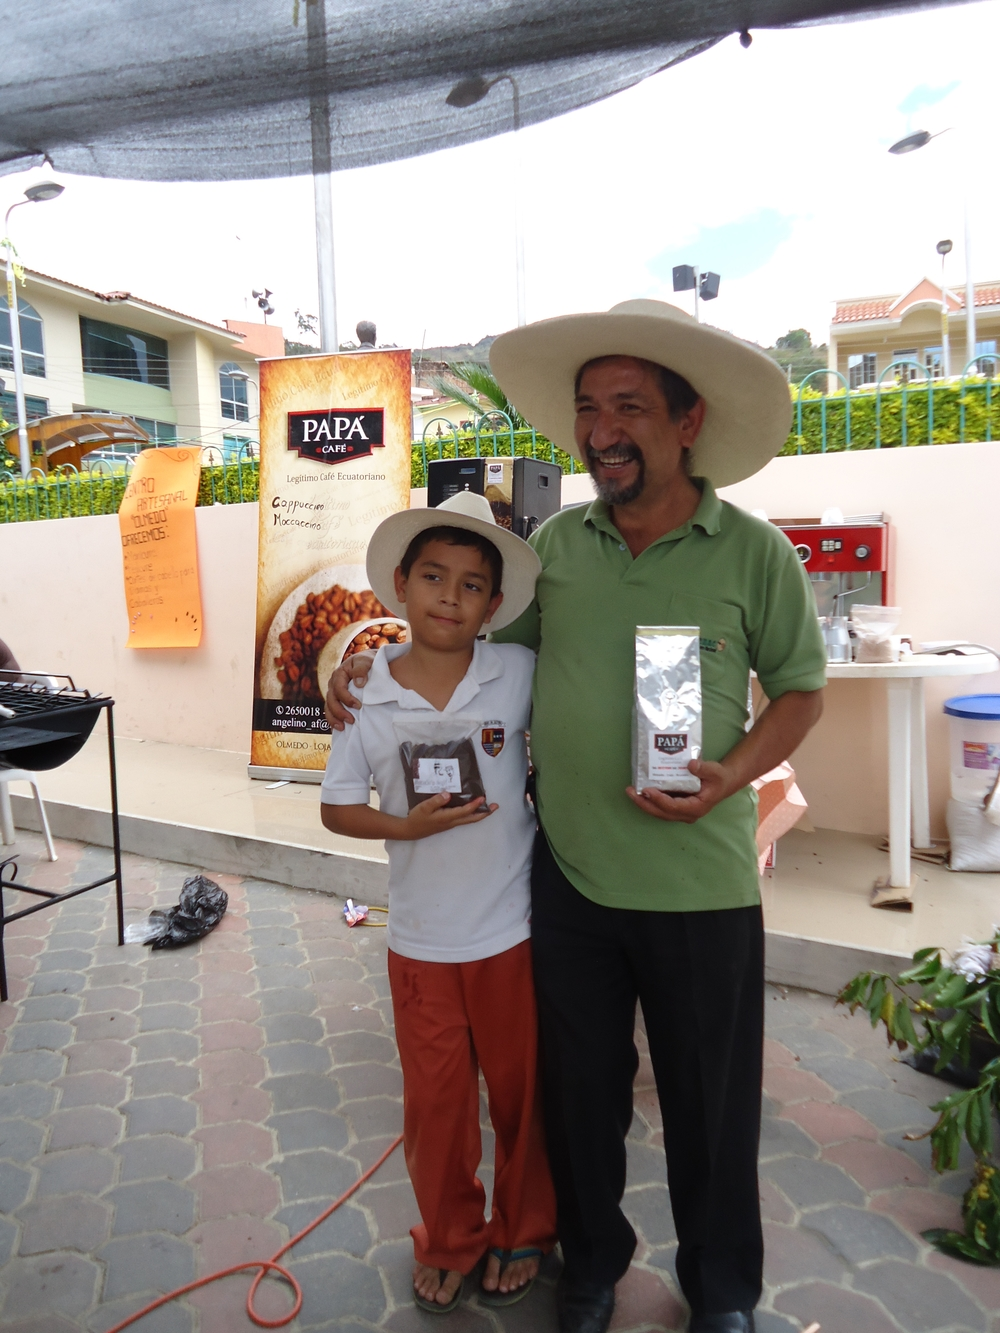 Angelino Abad with his son promoting his roasted coffee.